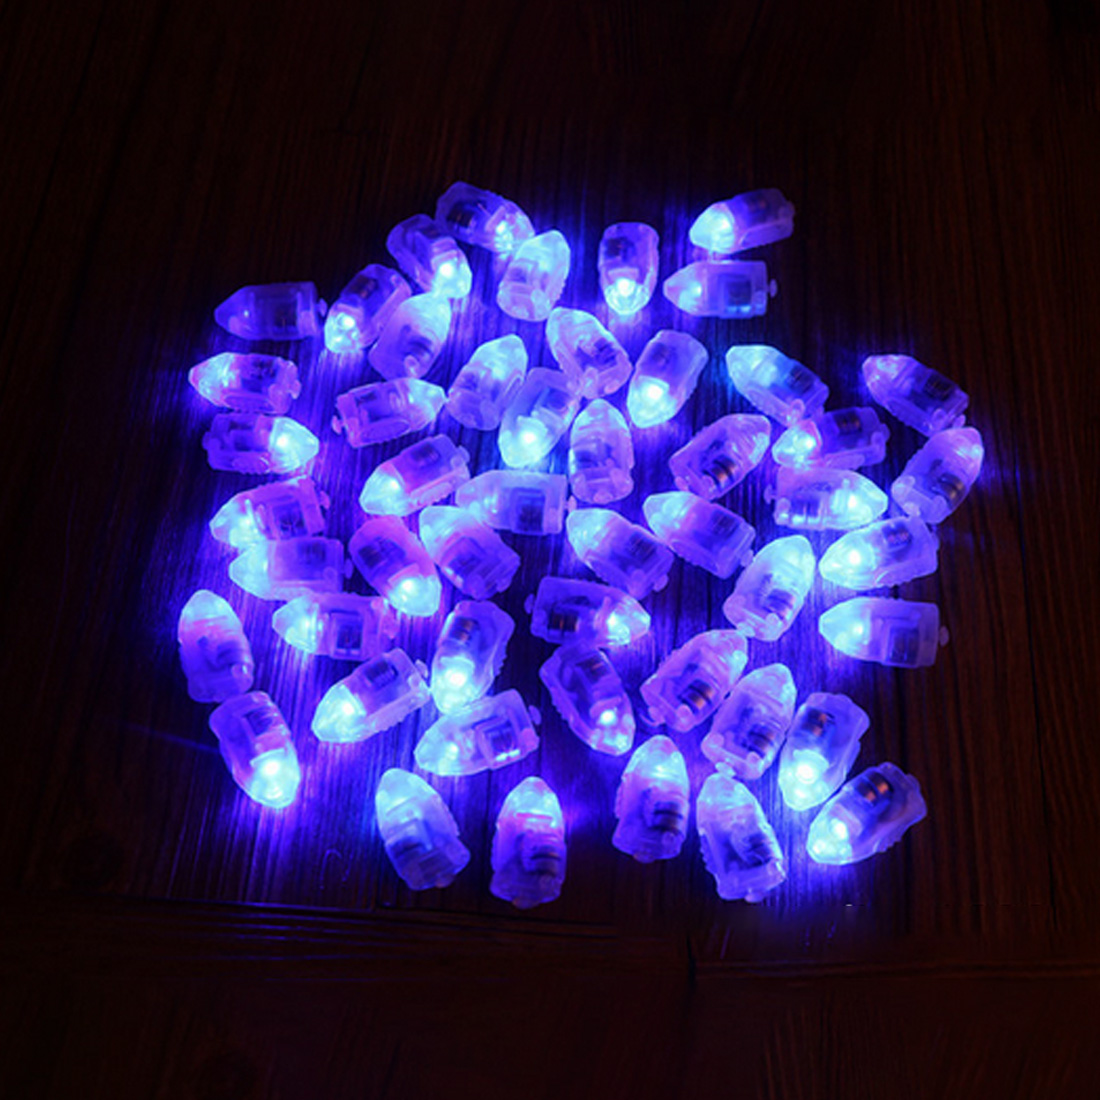 50pcs Colorful LED Lamps Balloon Lights For Paper Lantern Balloon Christmas Party Decoration Light Halloween Decorations